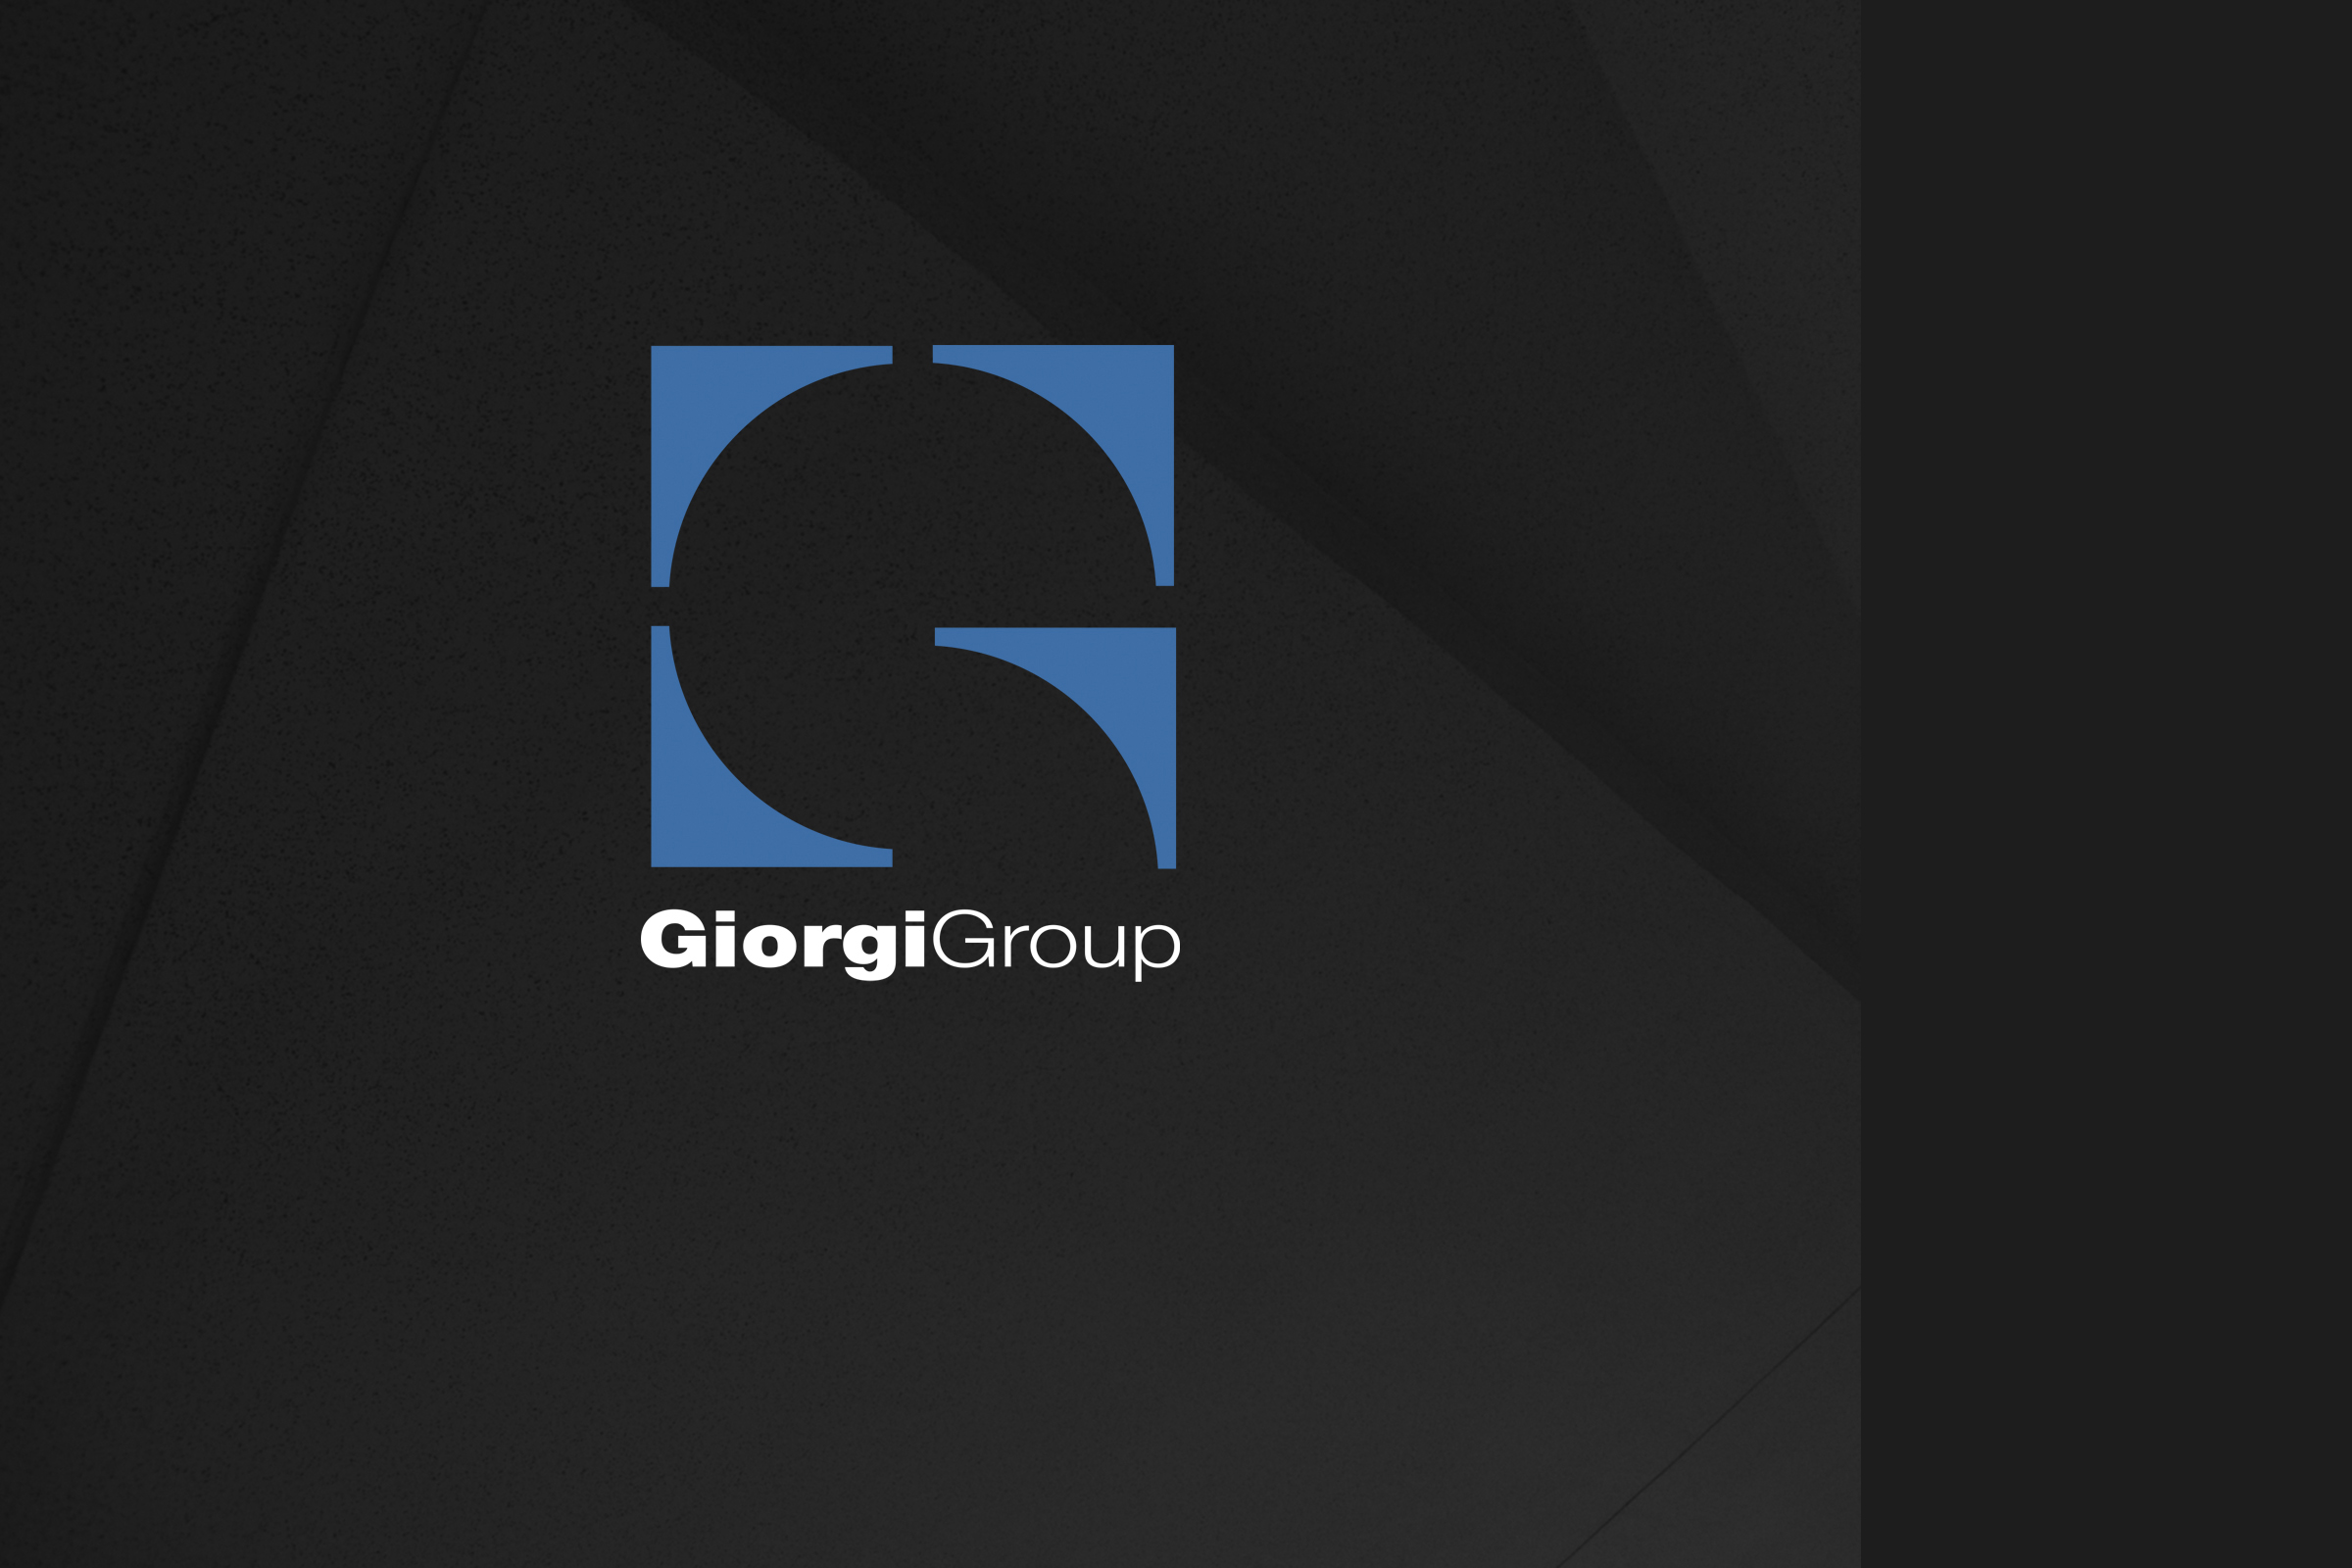 Giorgi Group